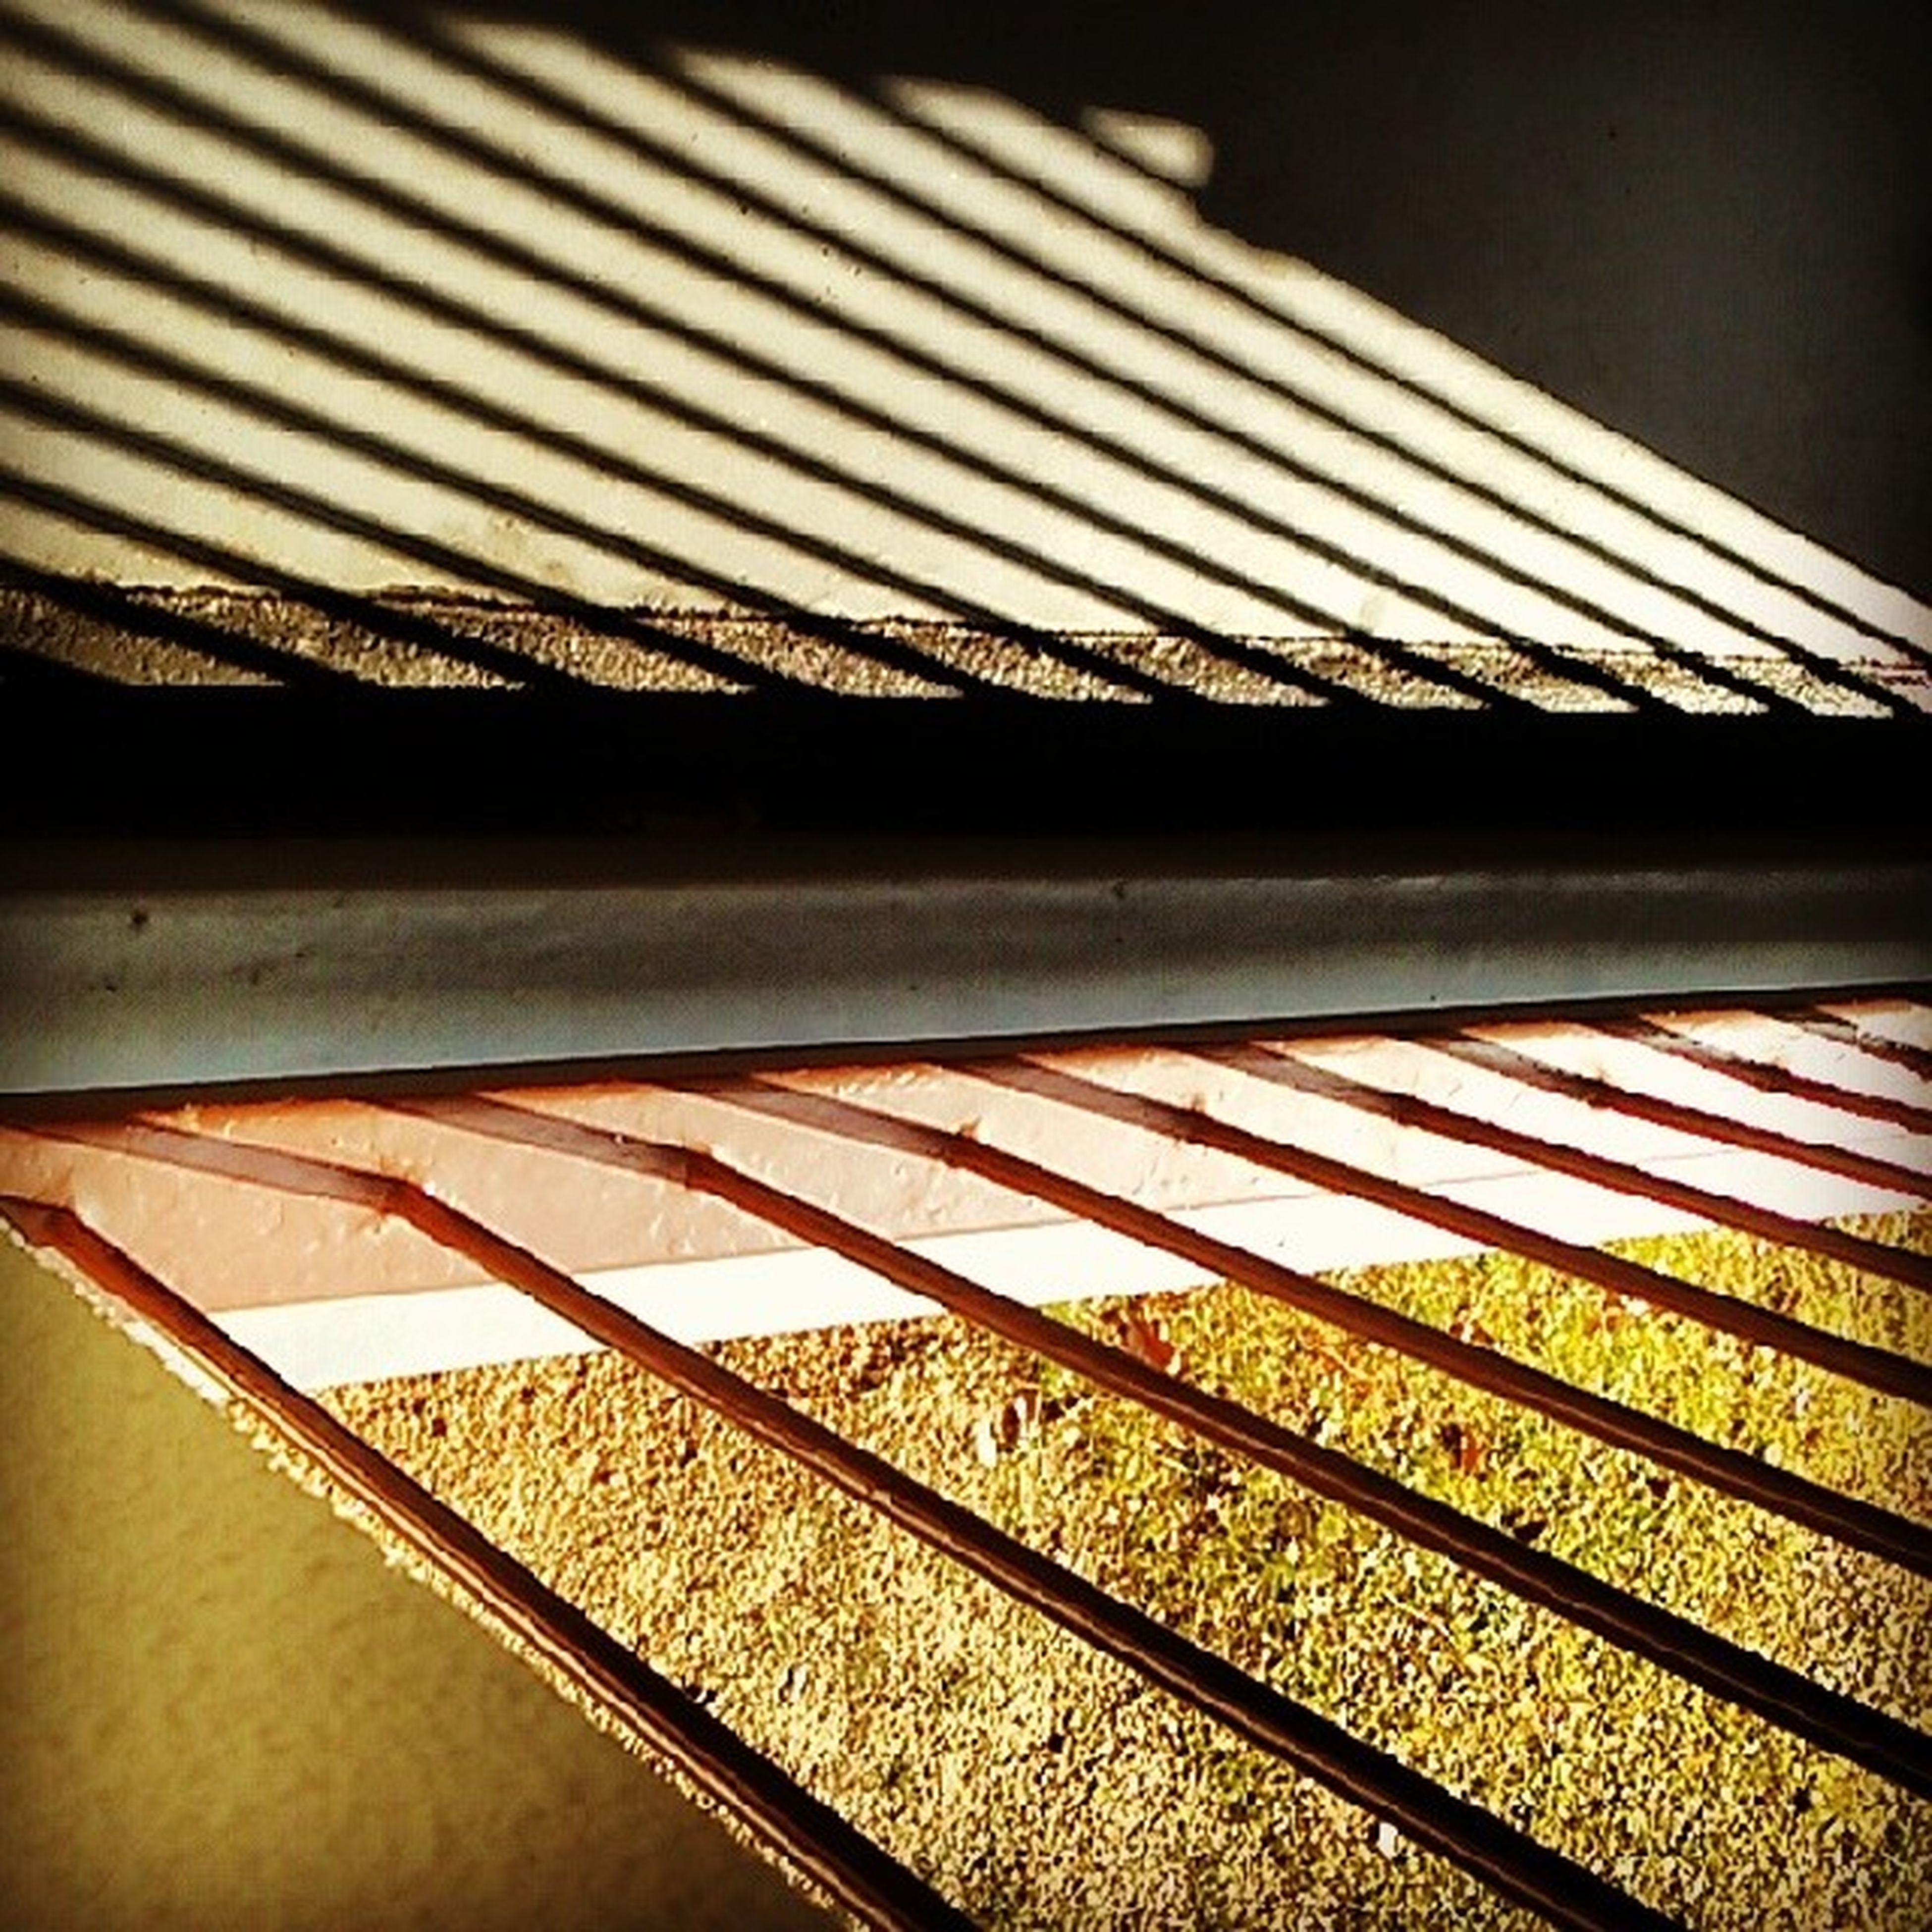 indoors, close-up, metal, pattern, no people, railing, high angle view, roof, focus on foreground, part of, selective focus, day, detail, metallic, still life, glass - material, railroad track, window, in a row